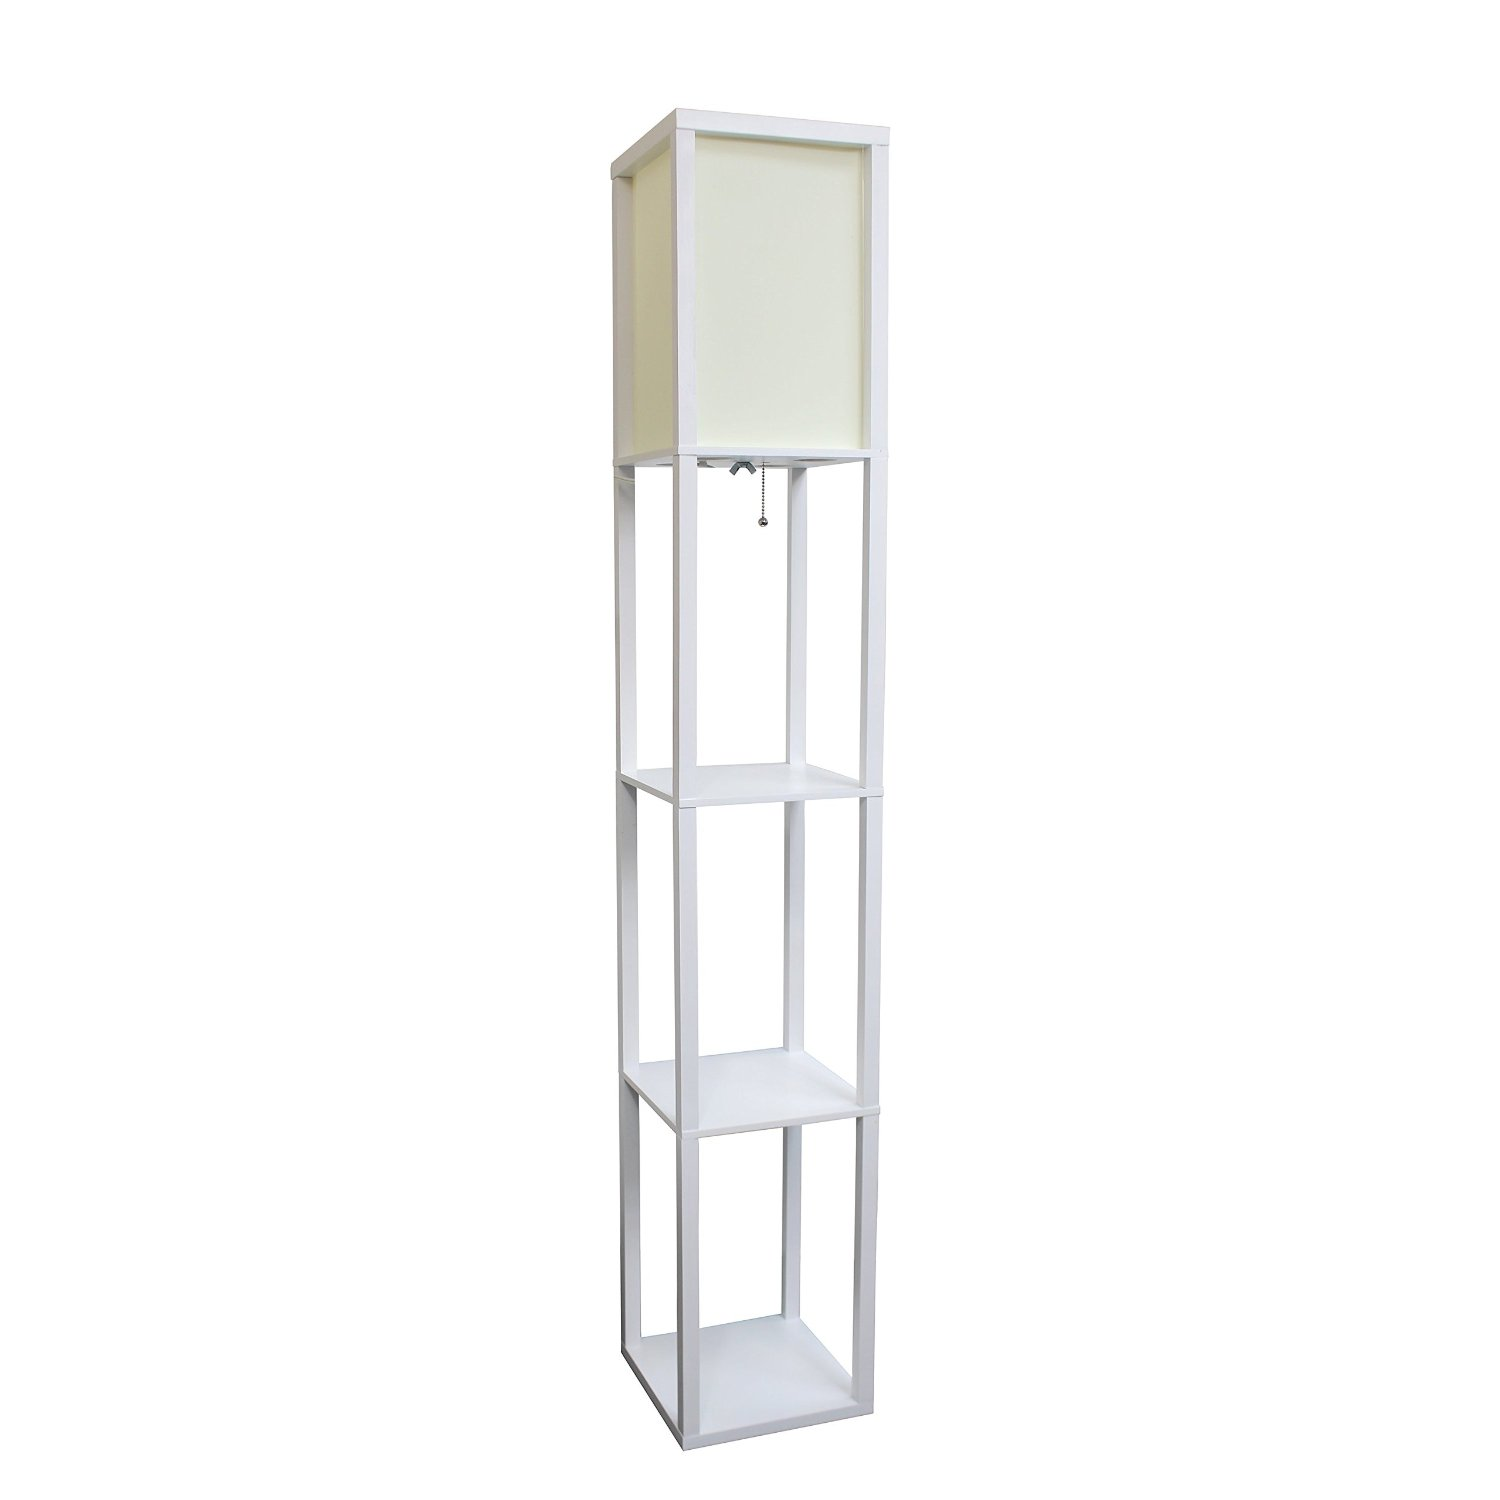 Simple Designs Floor Lamp Etagere Organizer Storage Shelf with Linen Shade